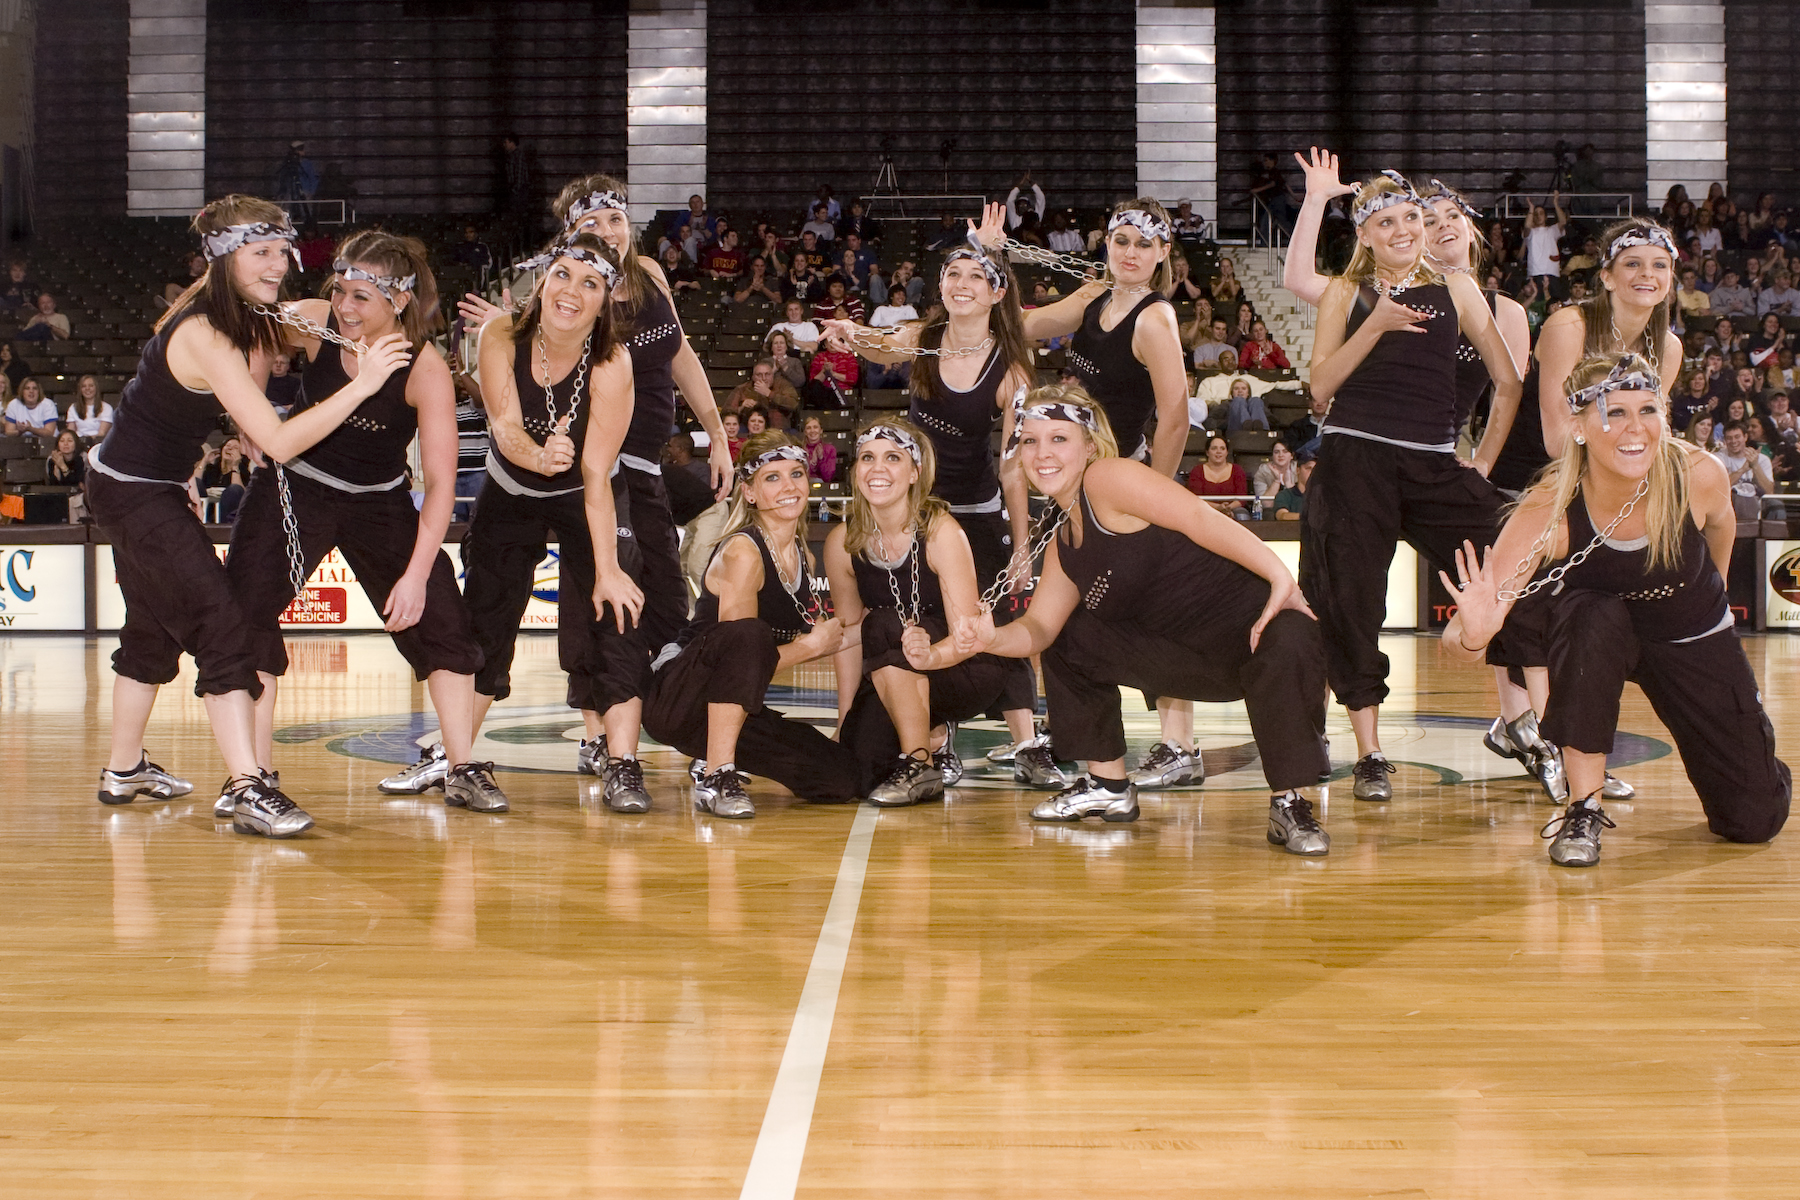 Sassy Cats Dance Team Announces Walk-On Tryout Aug. 29